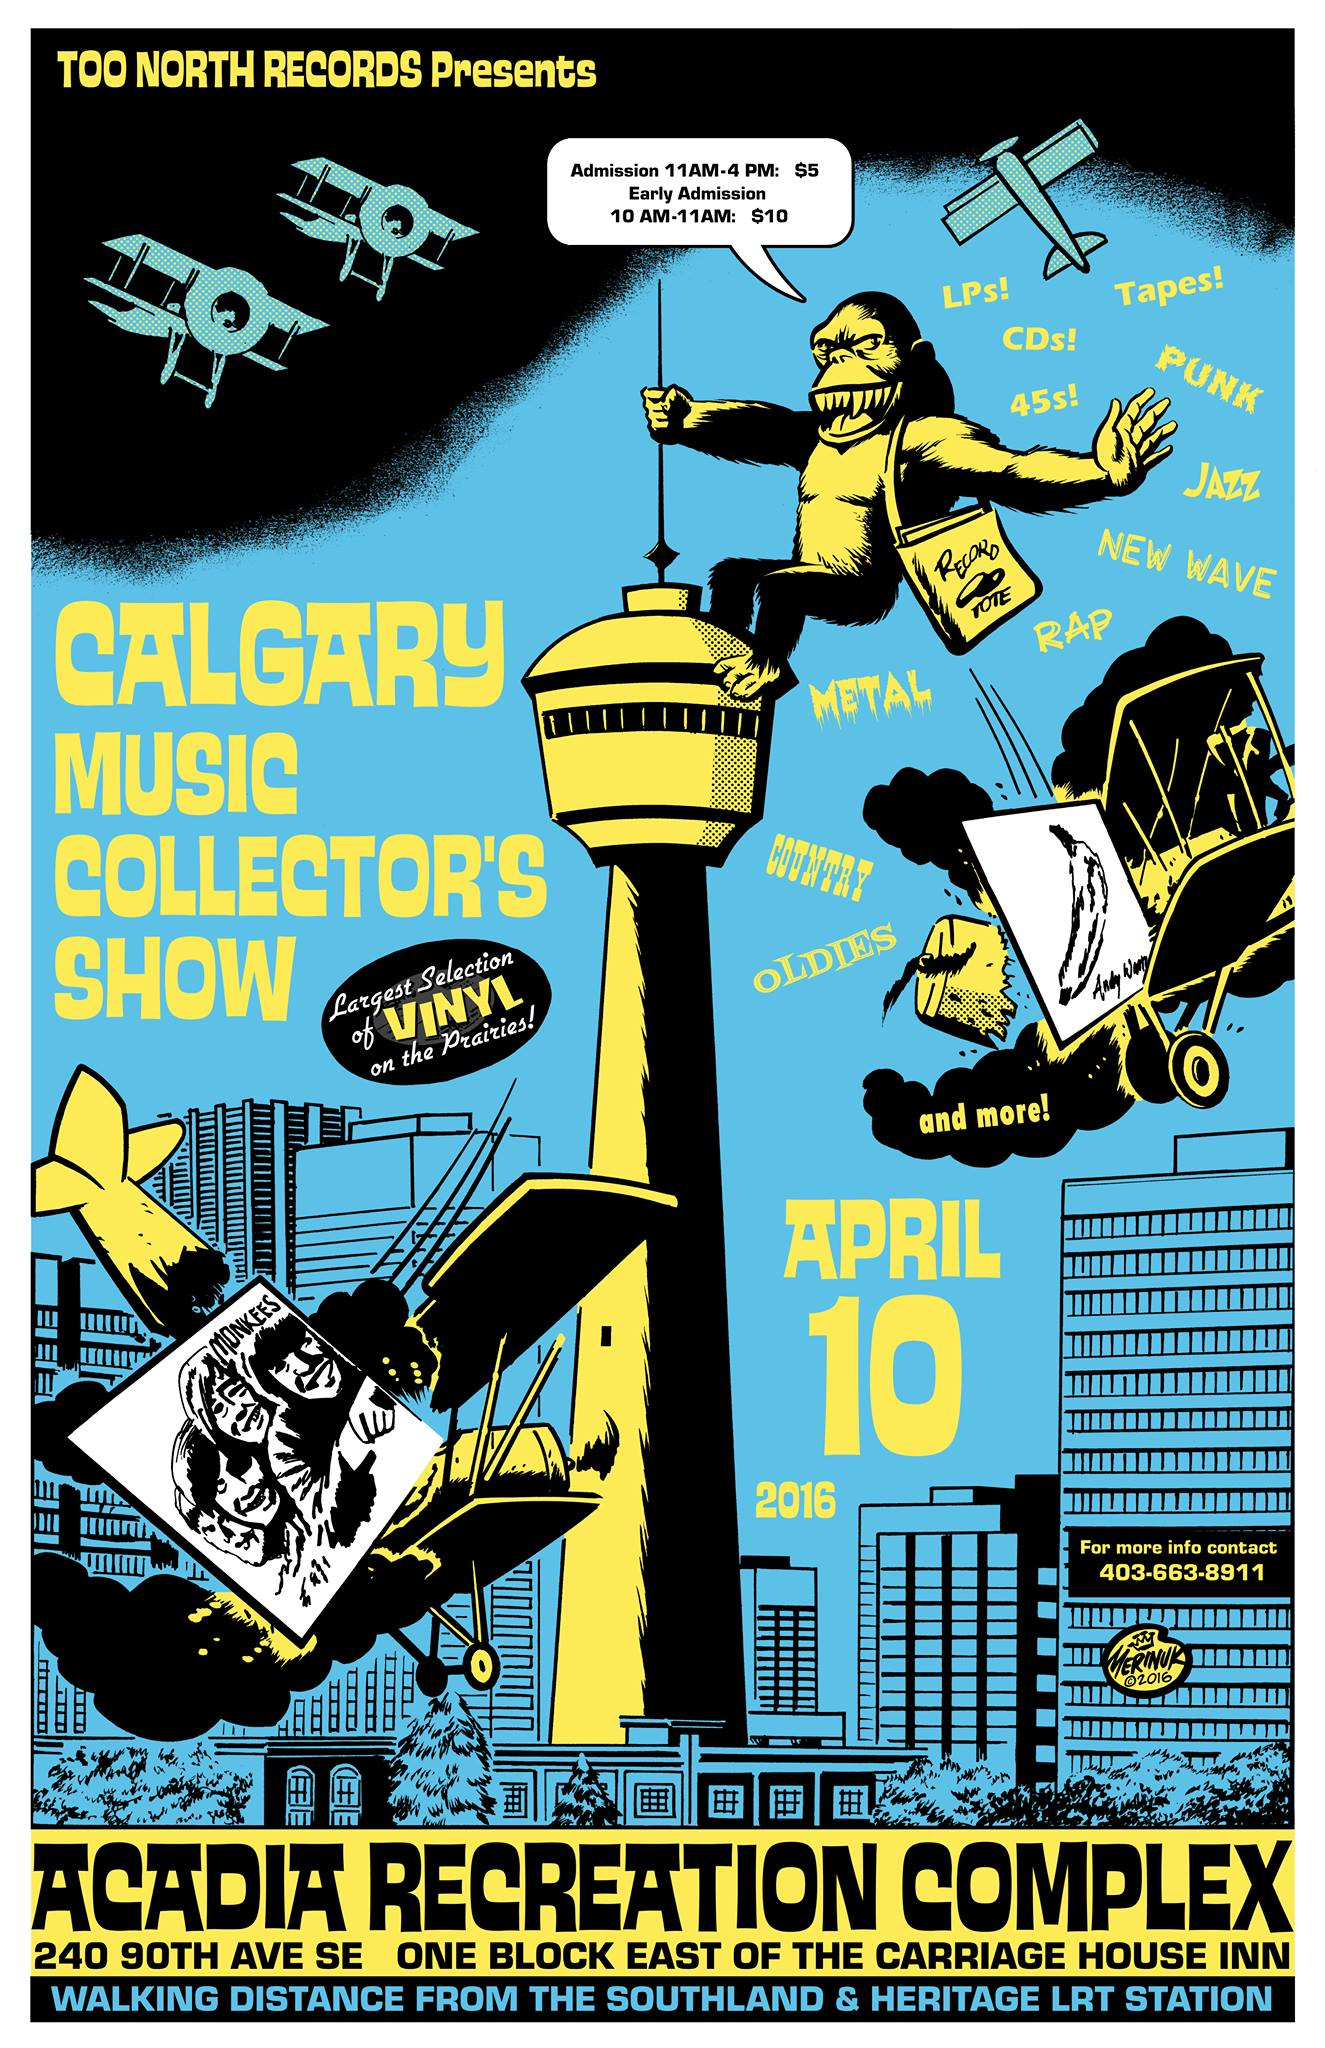 Calgary Music Collectors Show April 10 2016